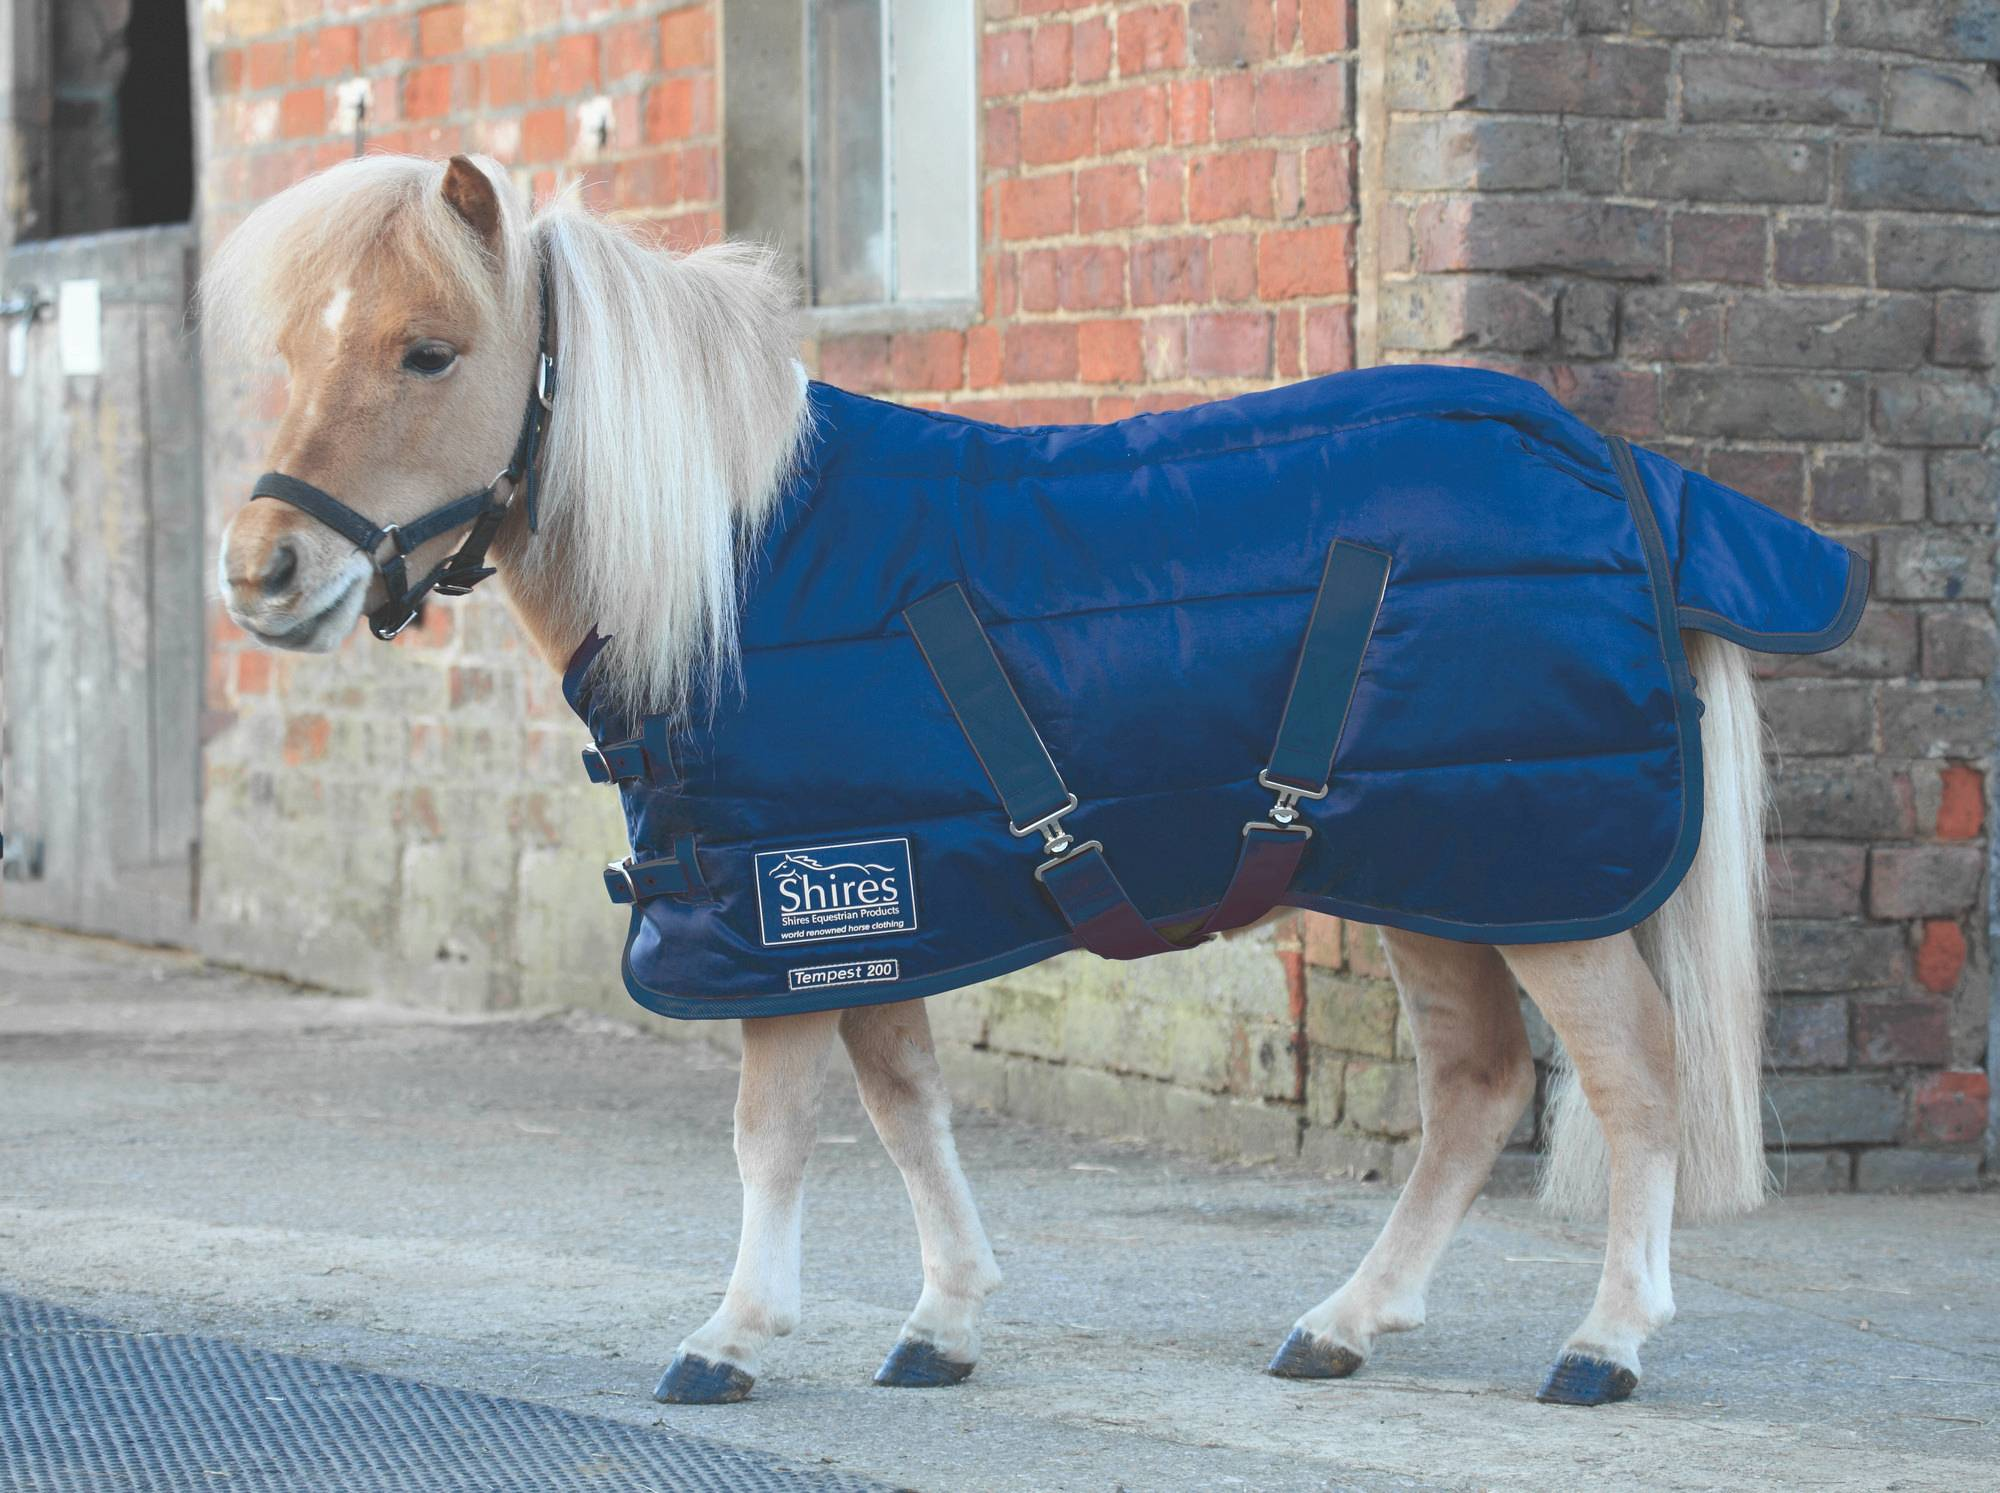 Shires Tempest Stable Blanket - Miniature, 200 gm